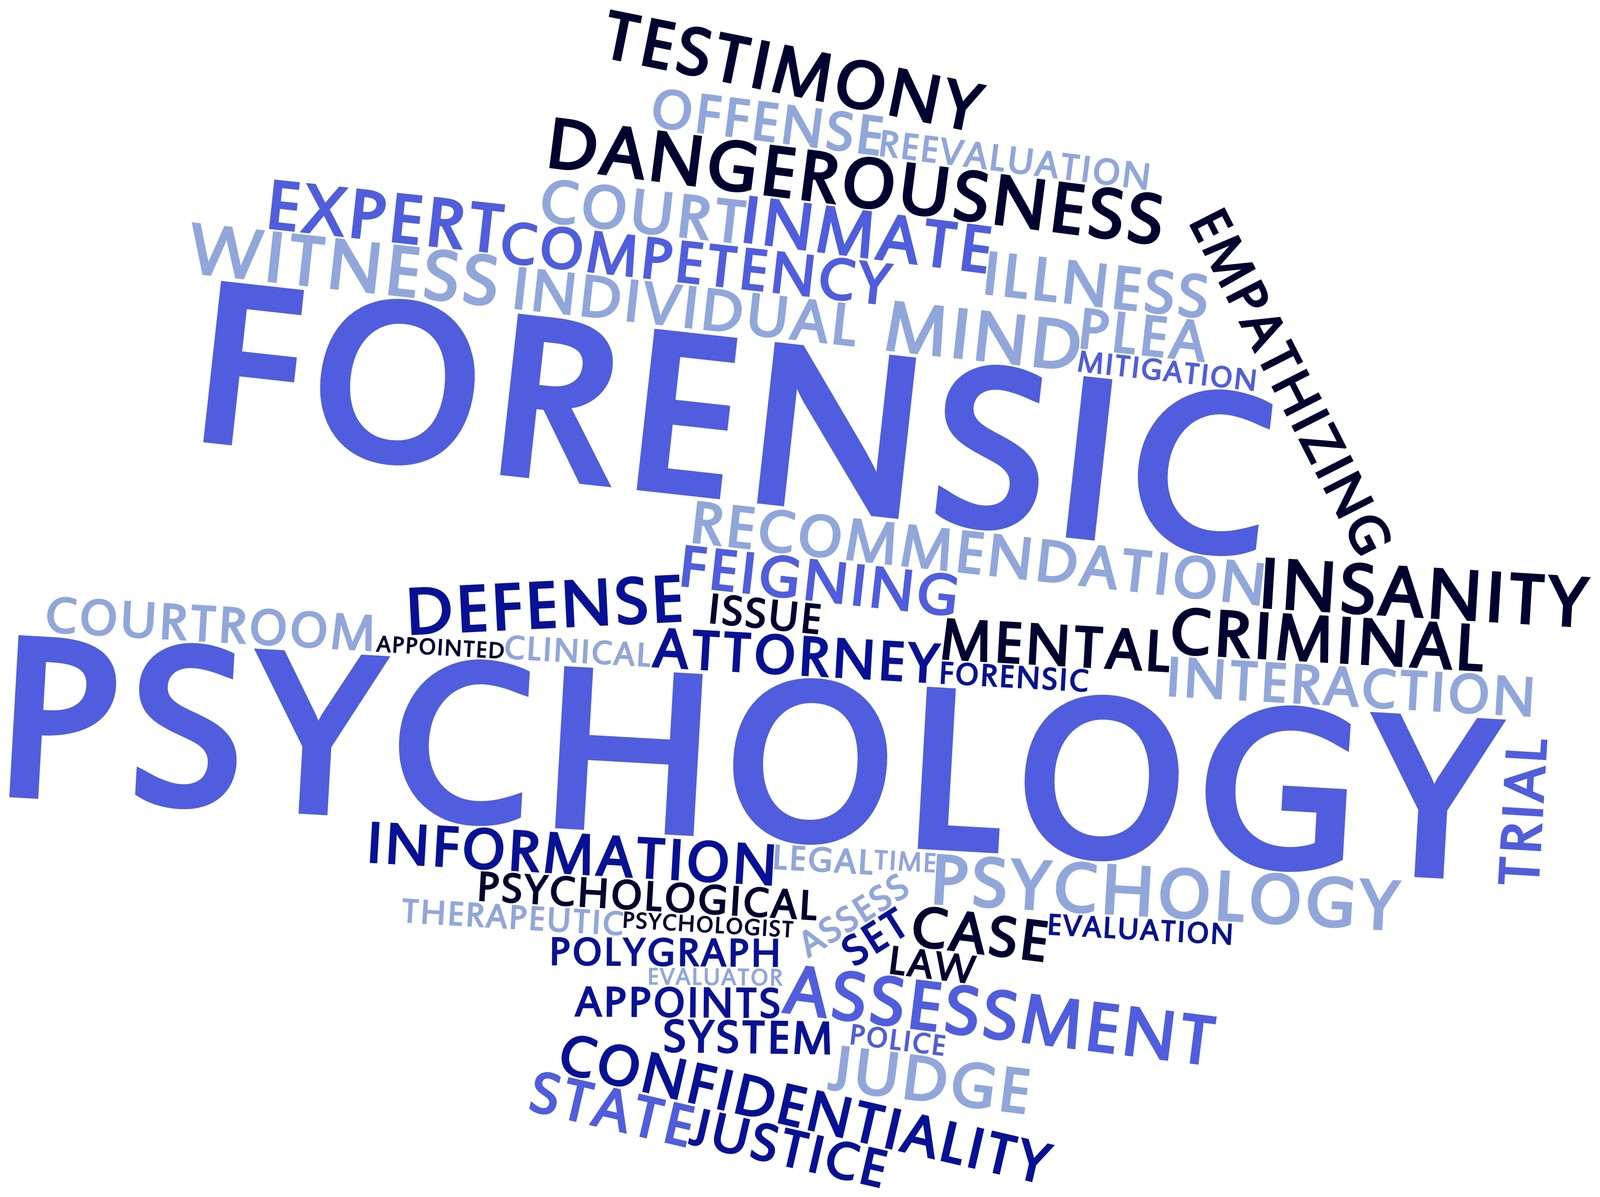 Criminal-Psychologist-vs-Forensic-Psychologist